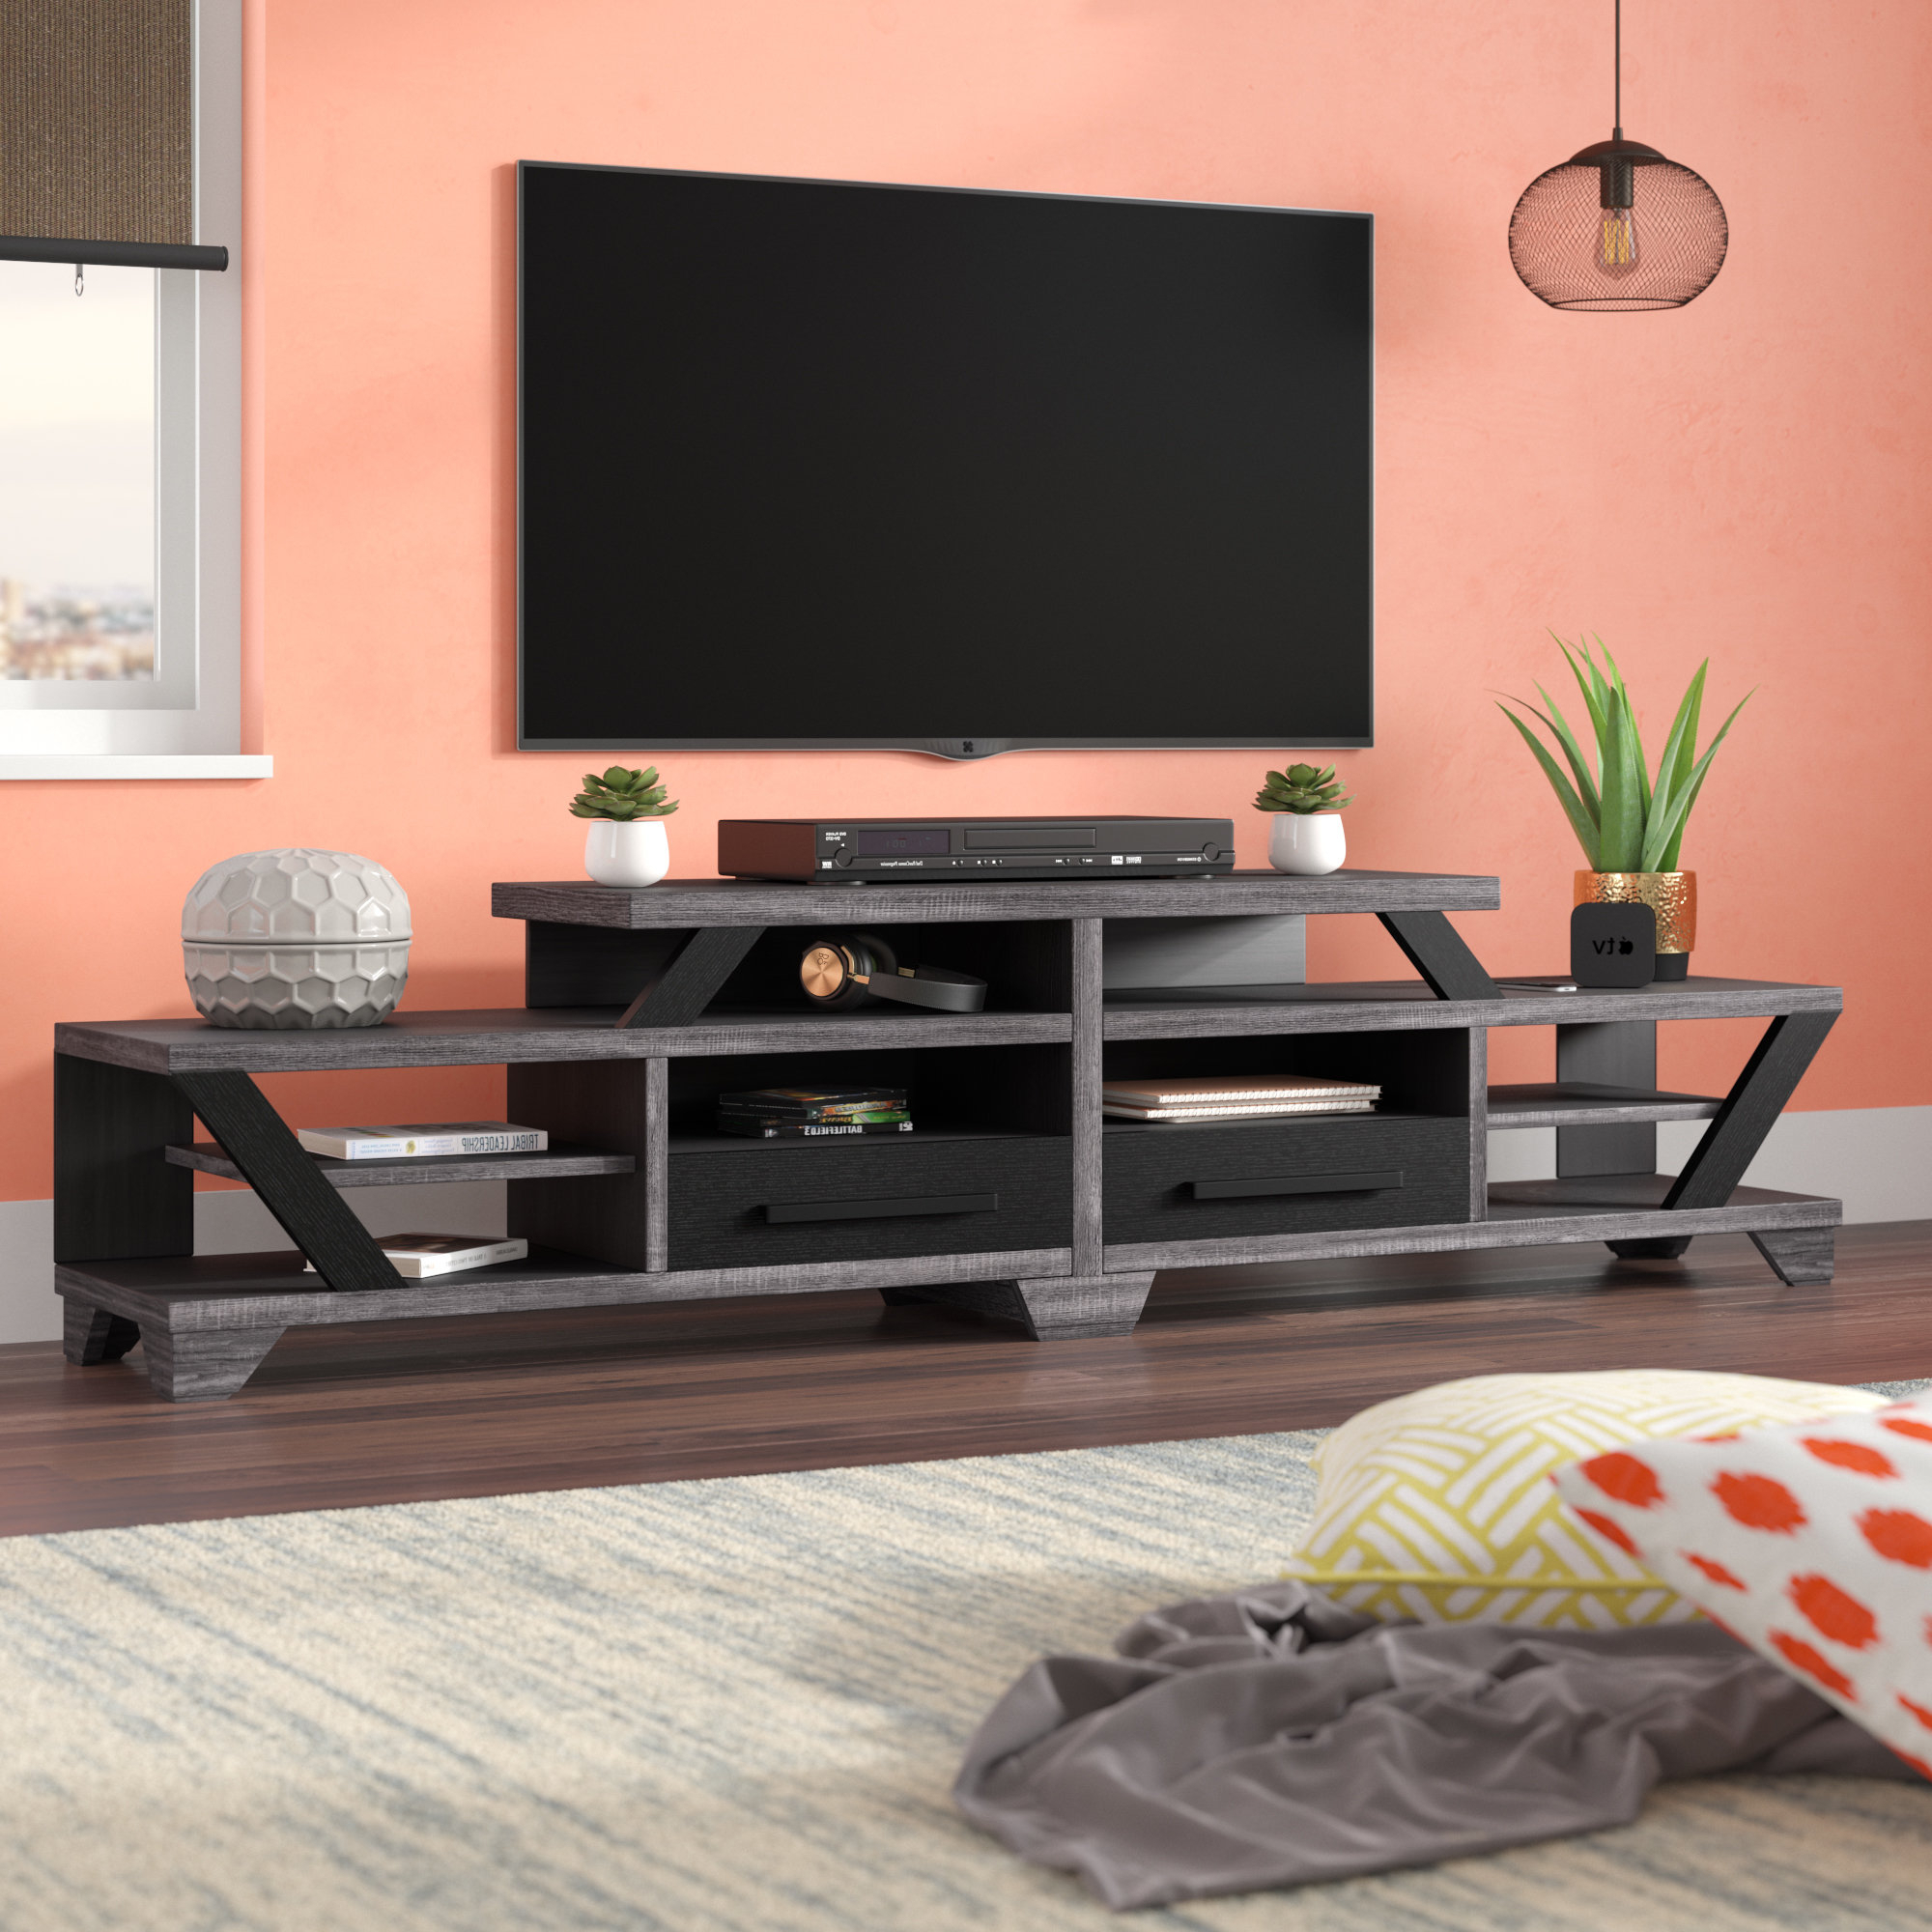 Brayden Studio Brosnan Contemporary Tv Stand For Tvs Up To 80 Throughout 2018 Contemporary Tv Cabinets For Flat Screens (View 4 of 20)